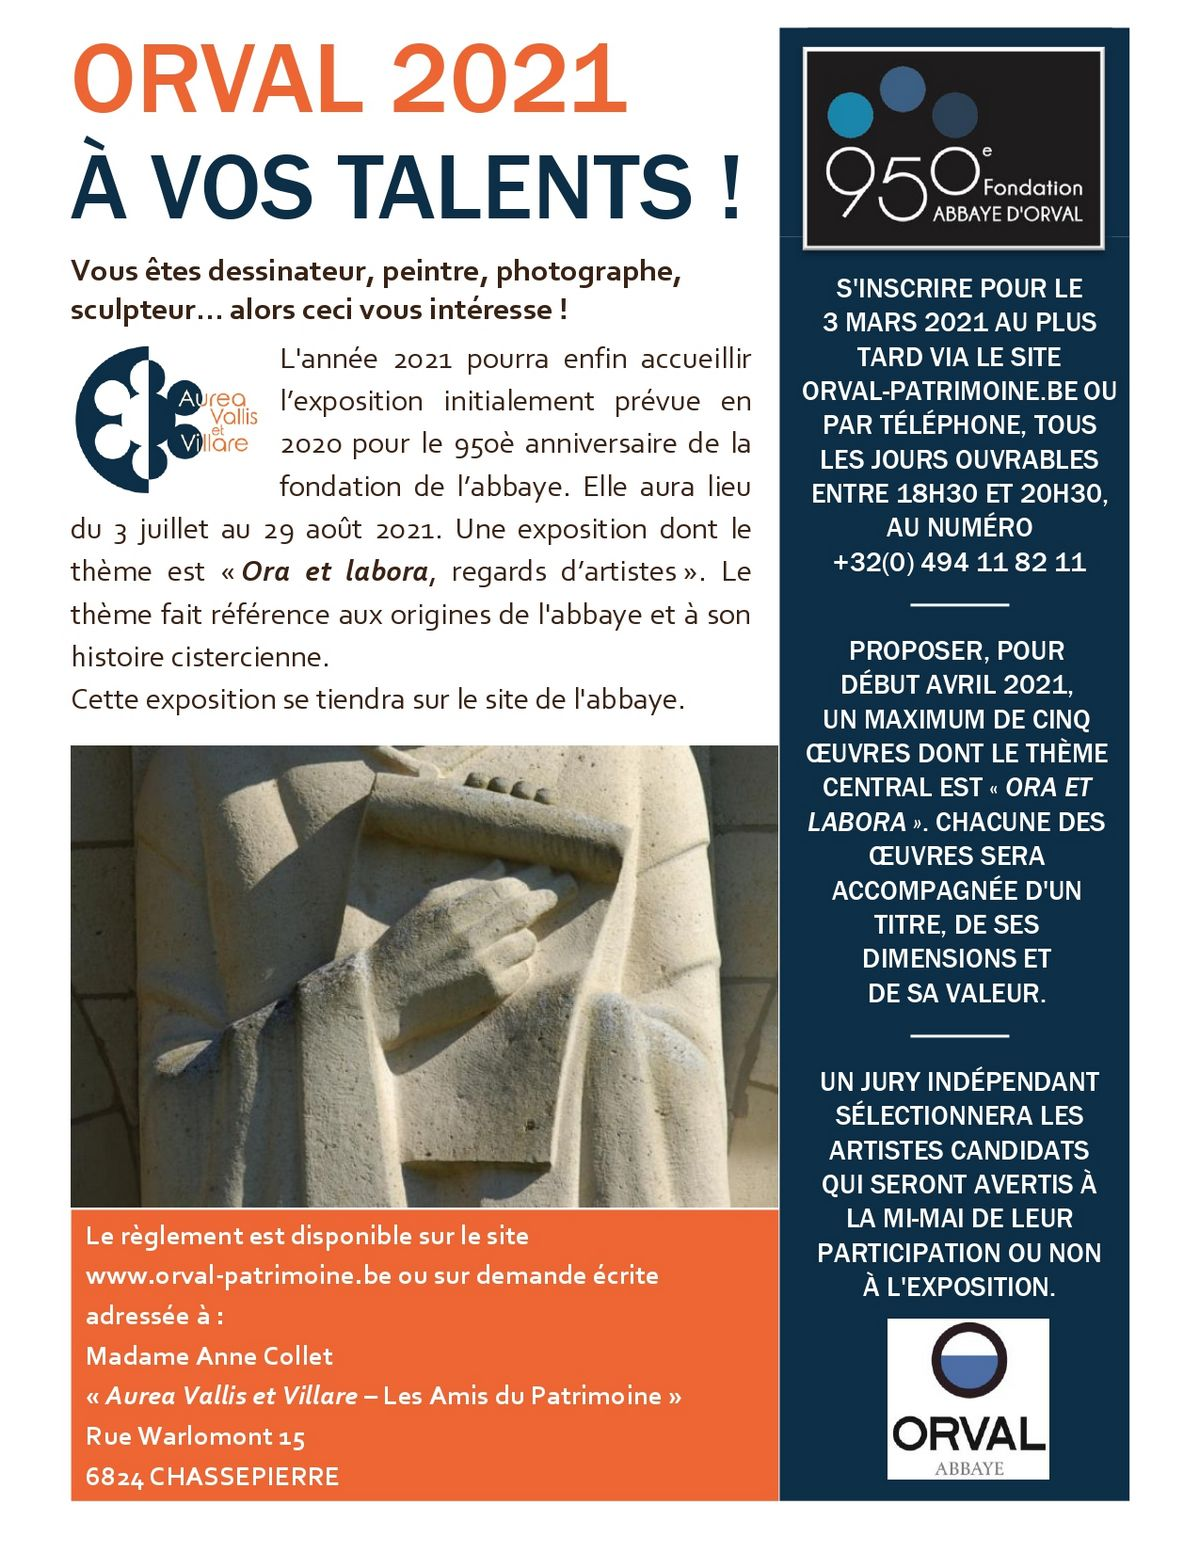 Orval 2021 - Exposition